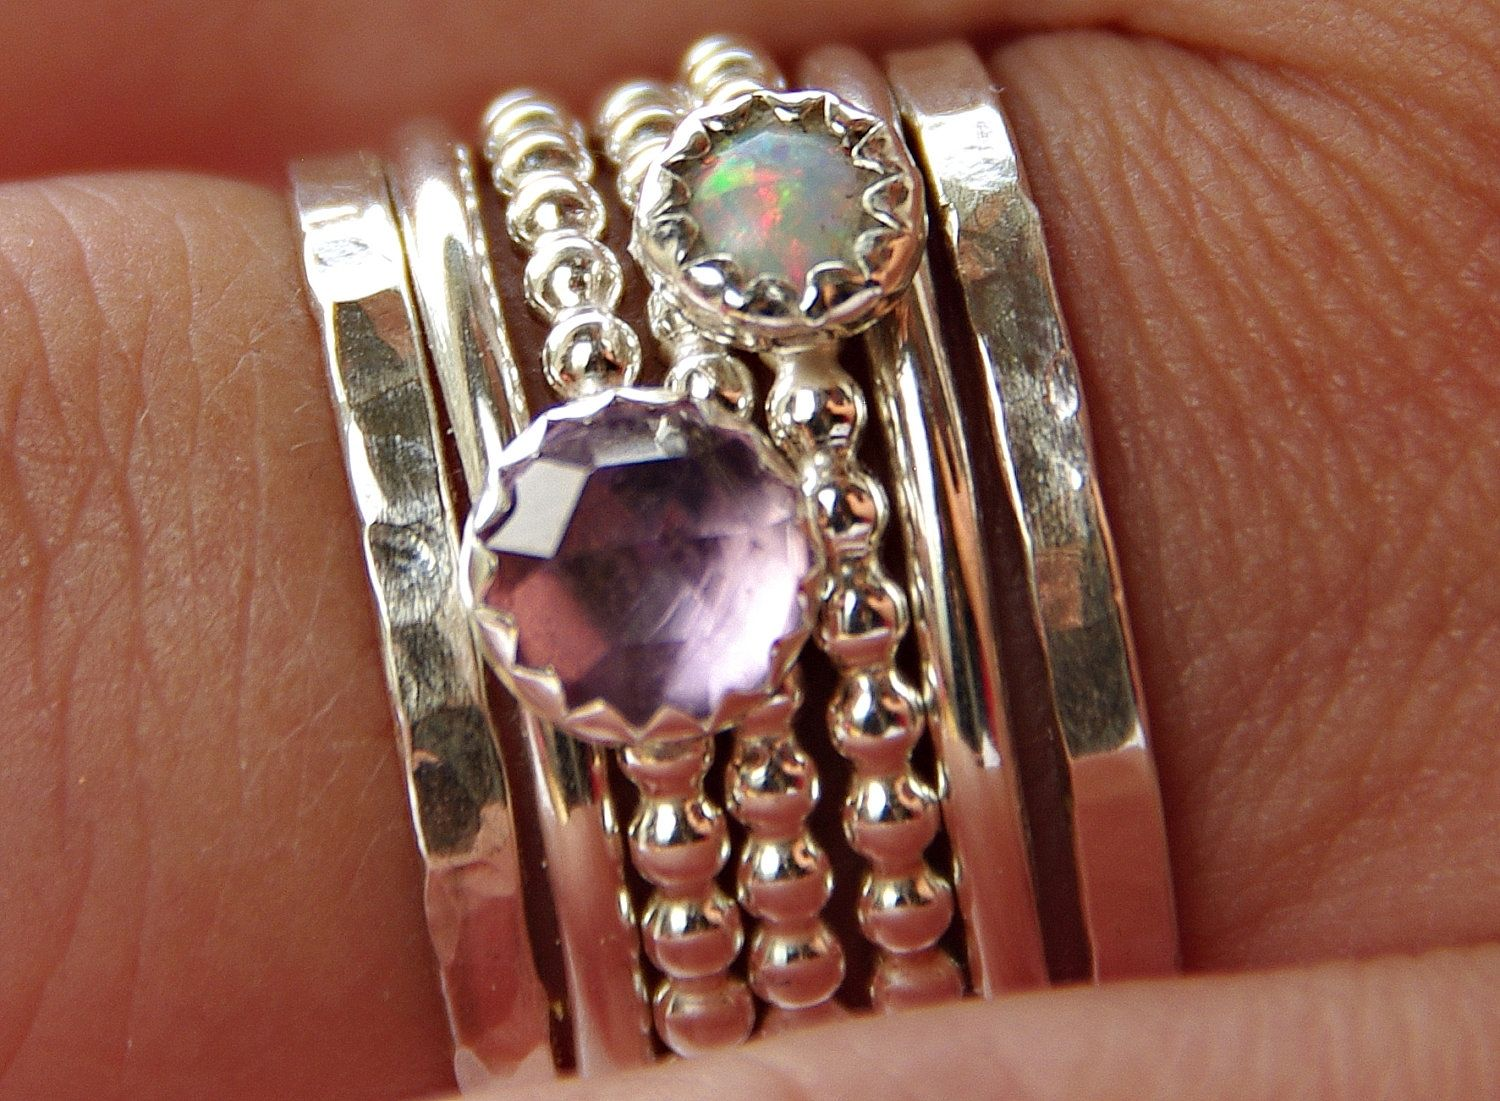 Buy custom opal amethyst stackable birthstones mothers rings custom made opal amethyst stackable birthstones mothers rings mothers day gifts aloadofball Image collections